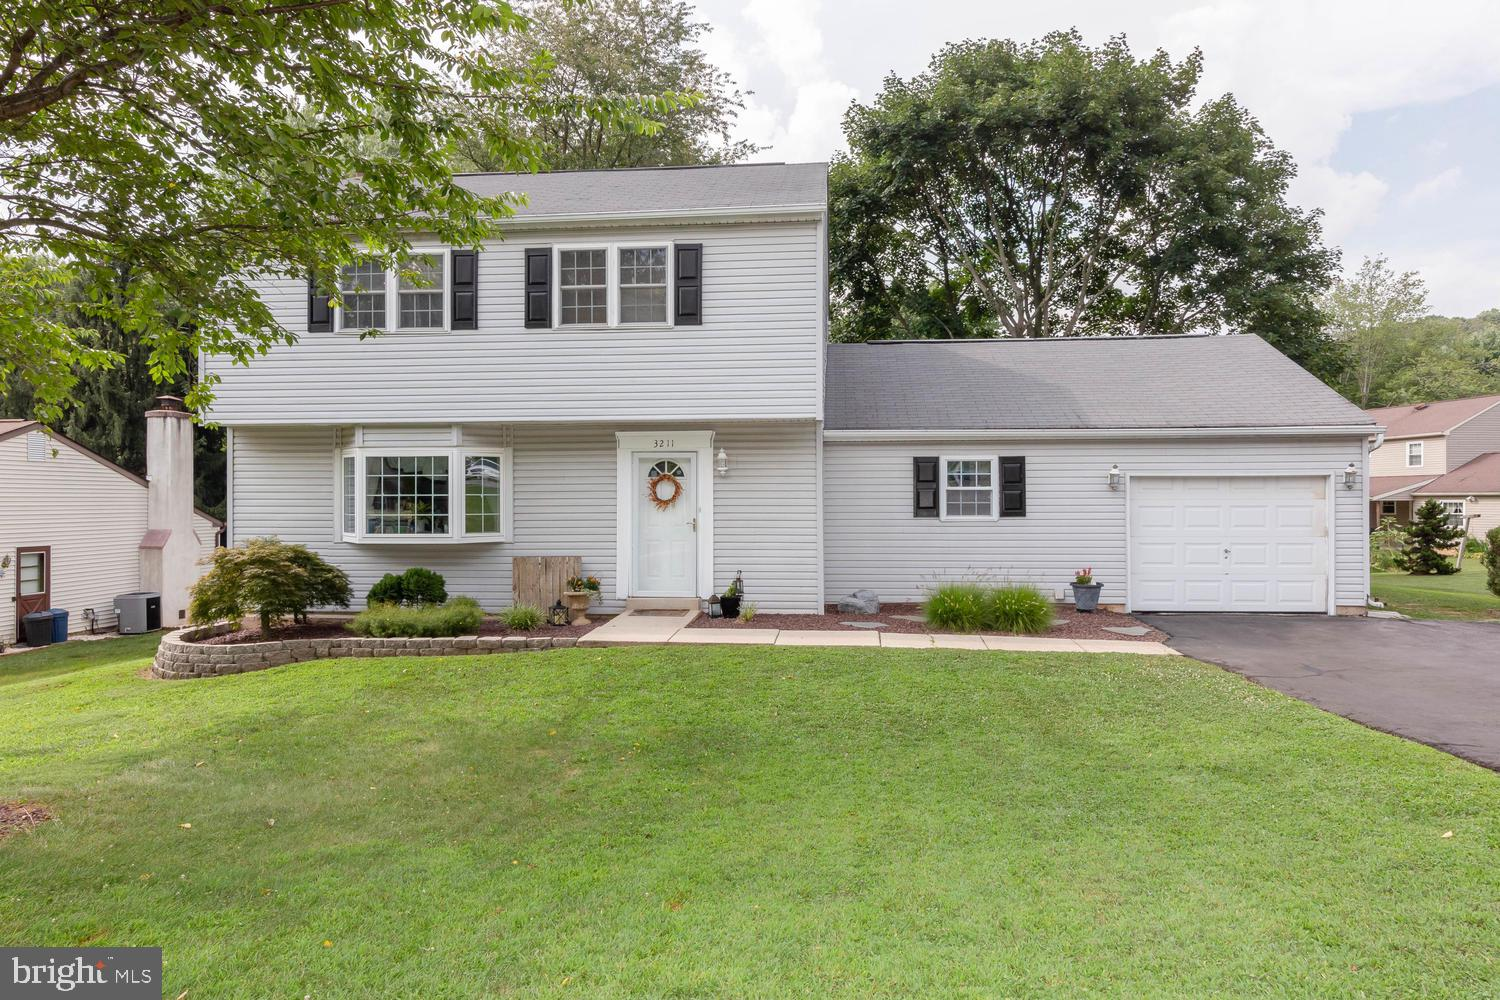 3211 NORMA DRIVE, THORNDALE, PA 19372